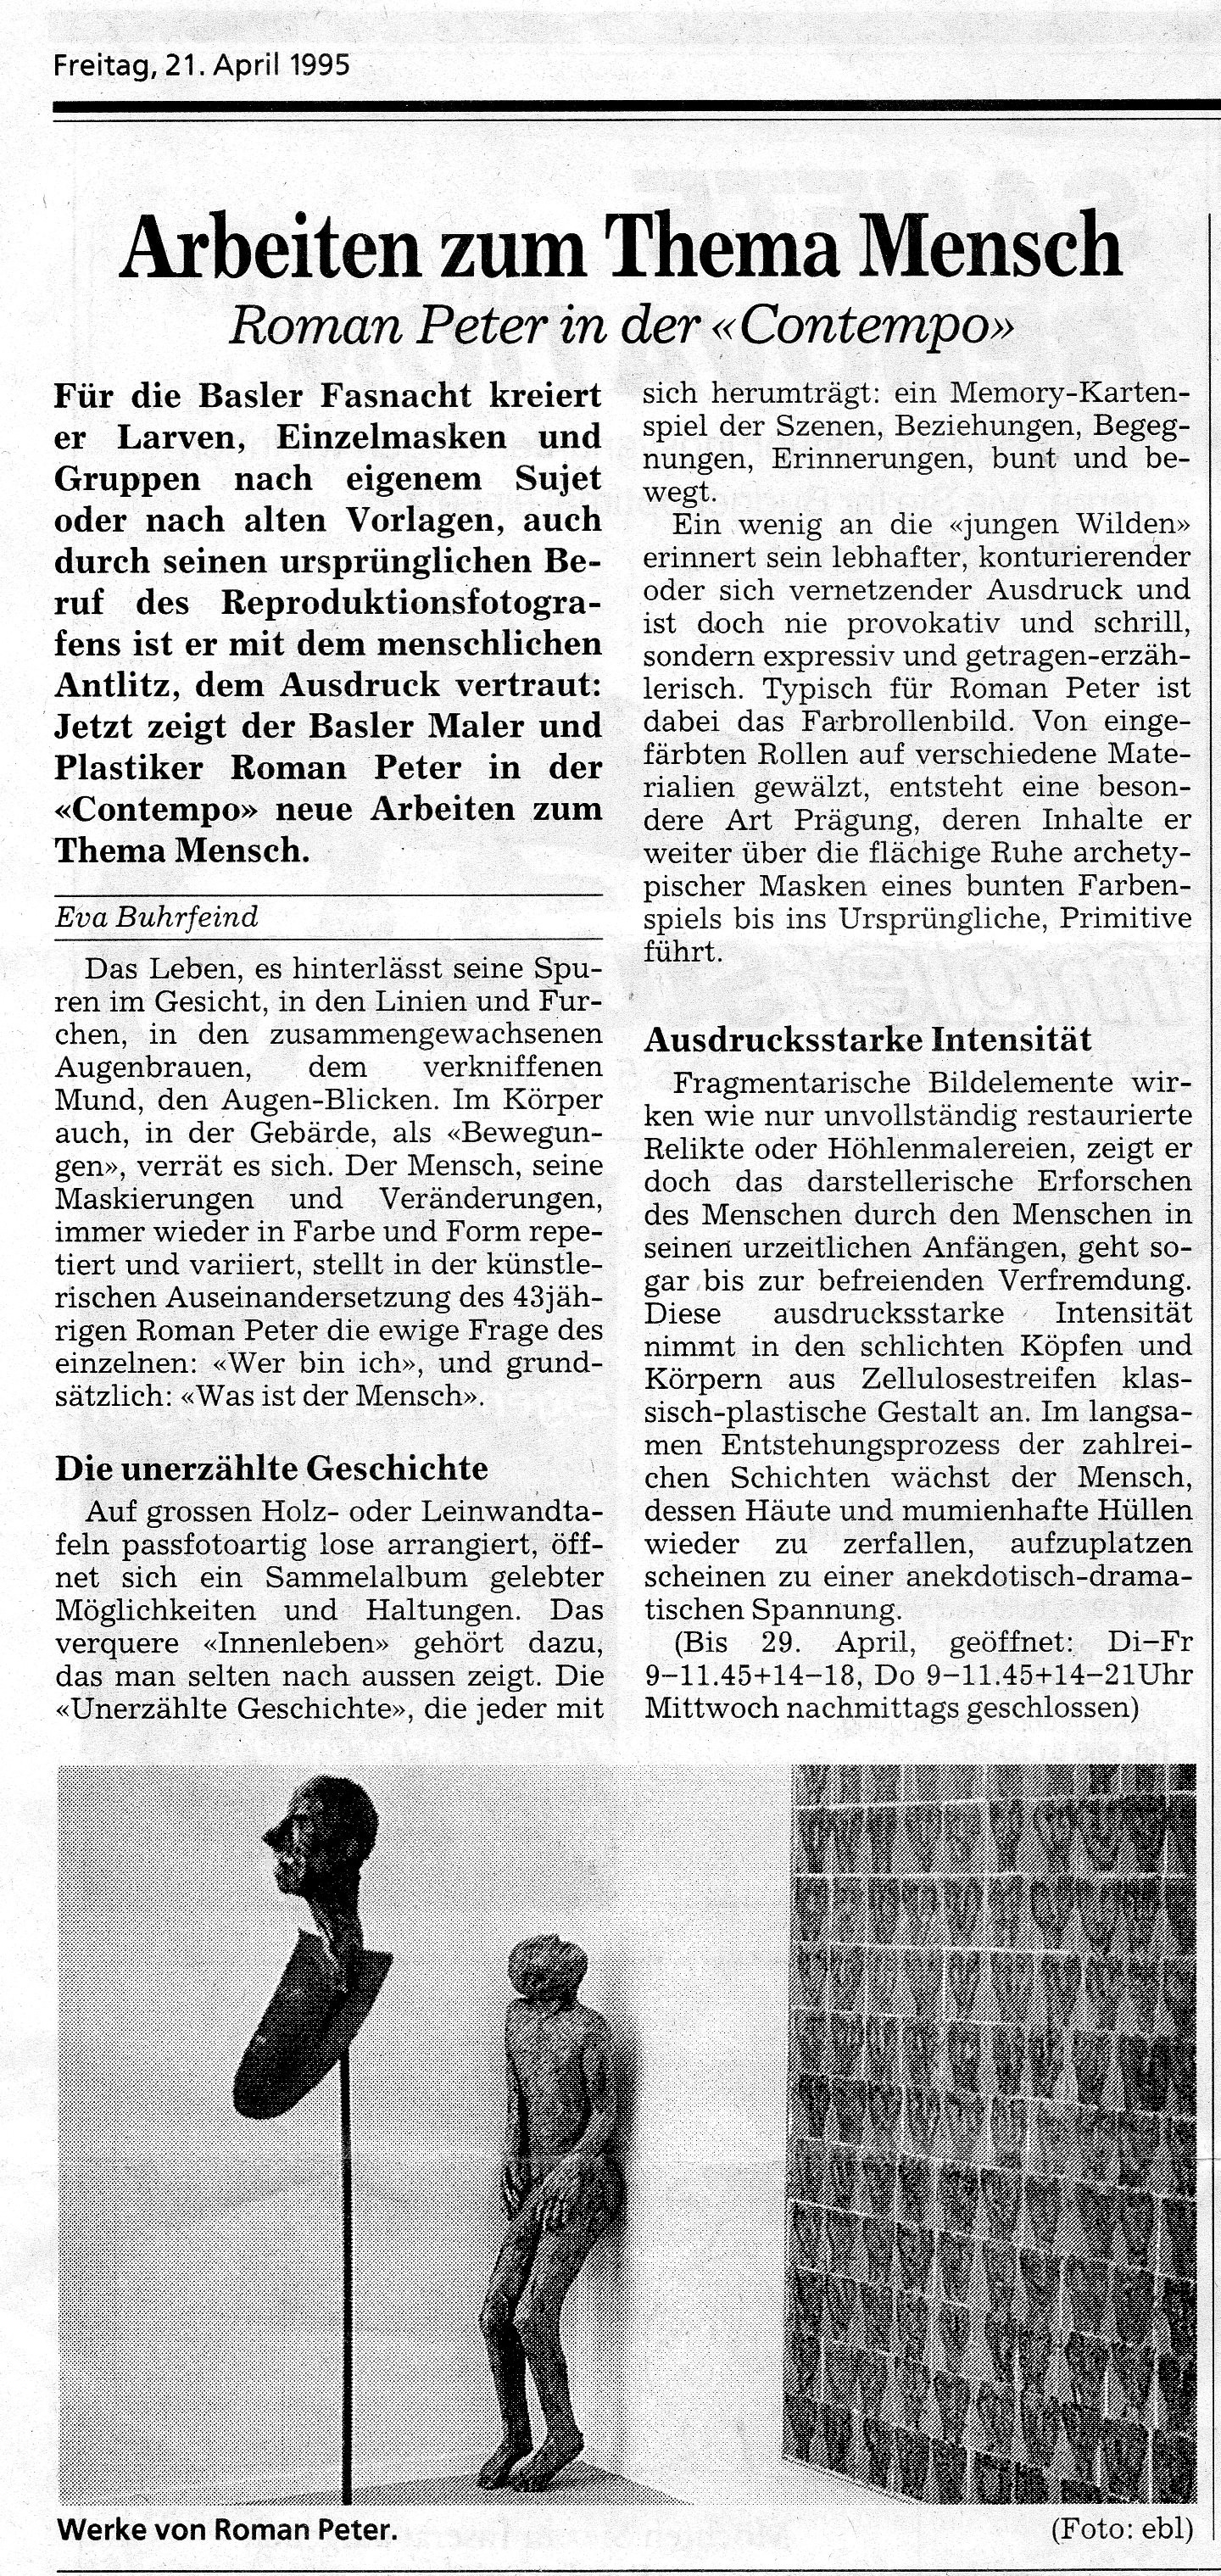 April 1995, Bieler Tagblatt